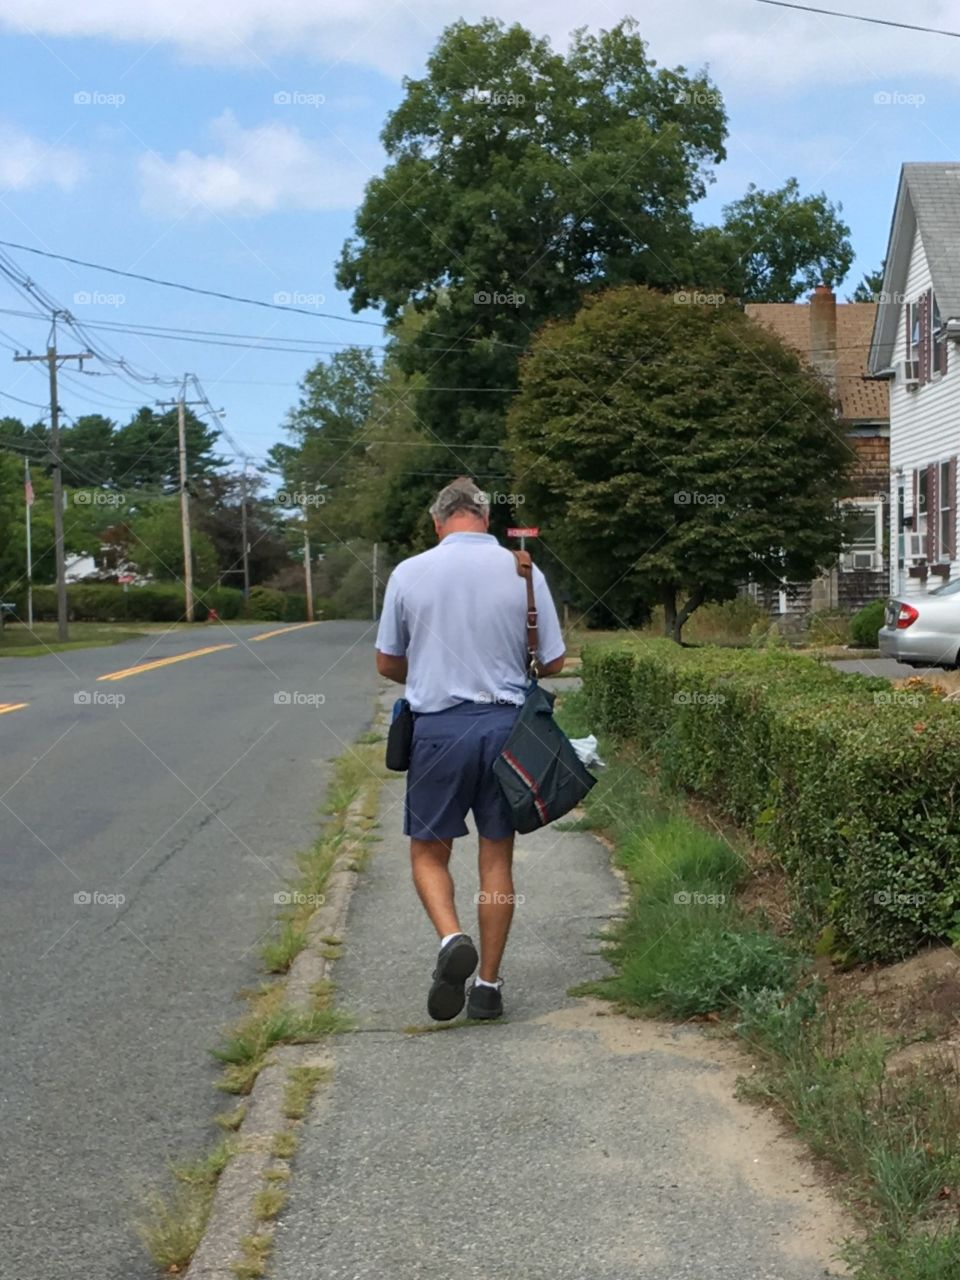 US Postal Service delivering mail to homes while walking.